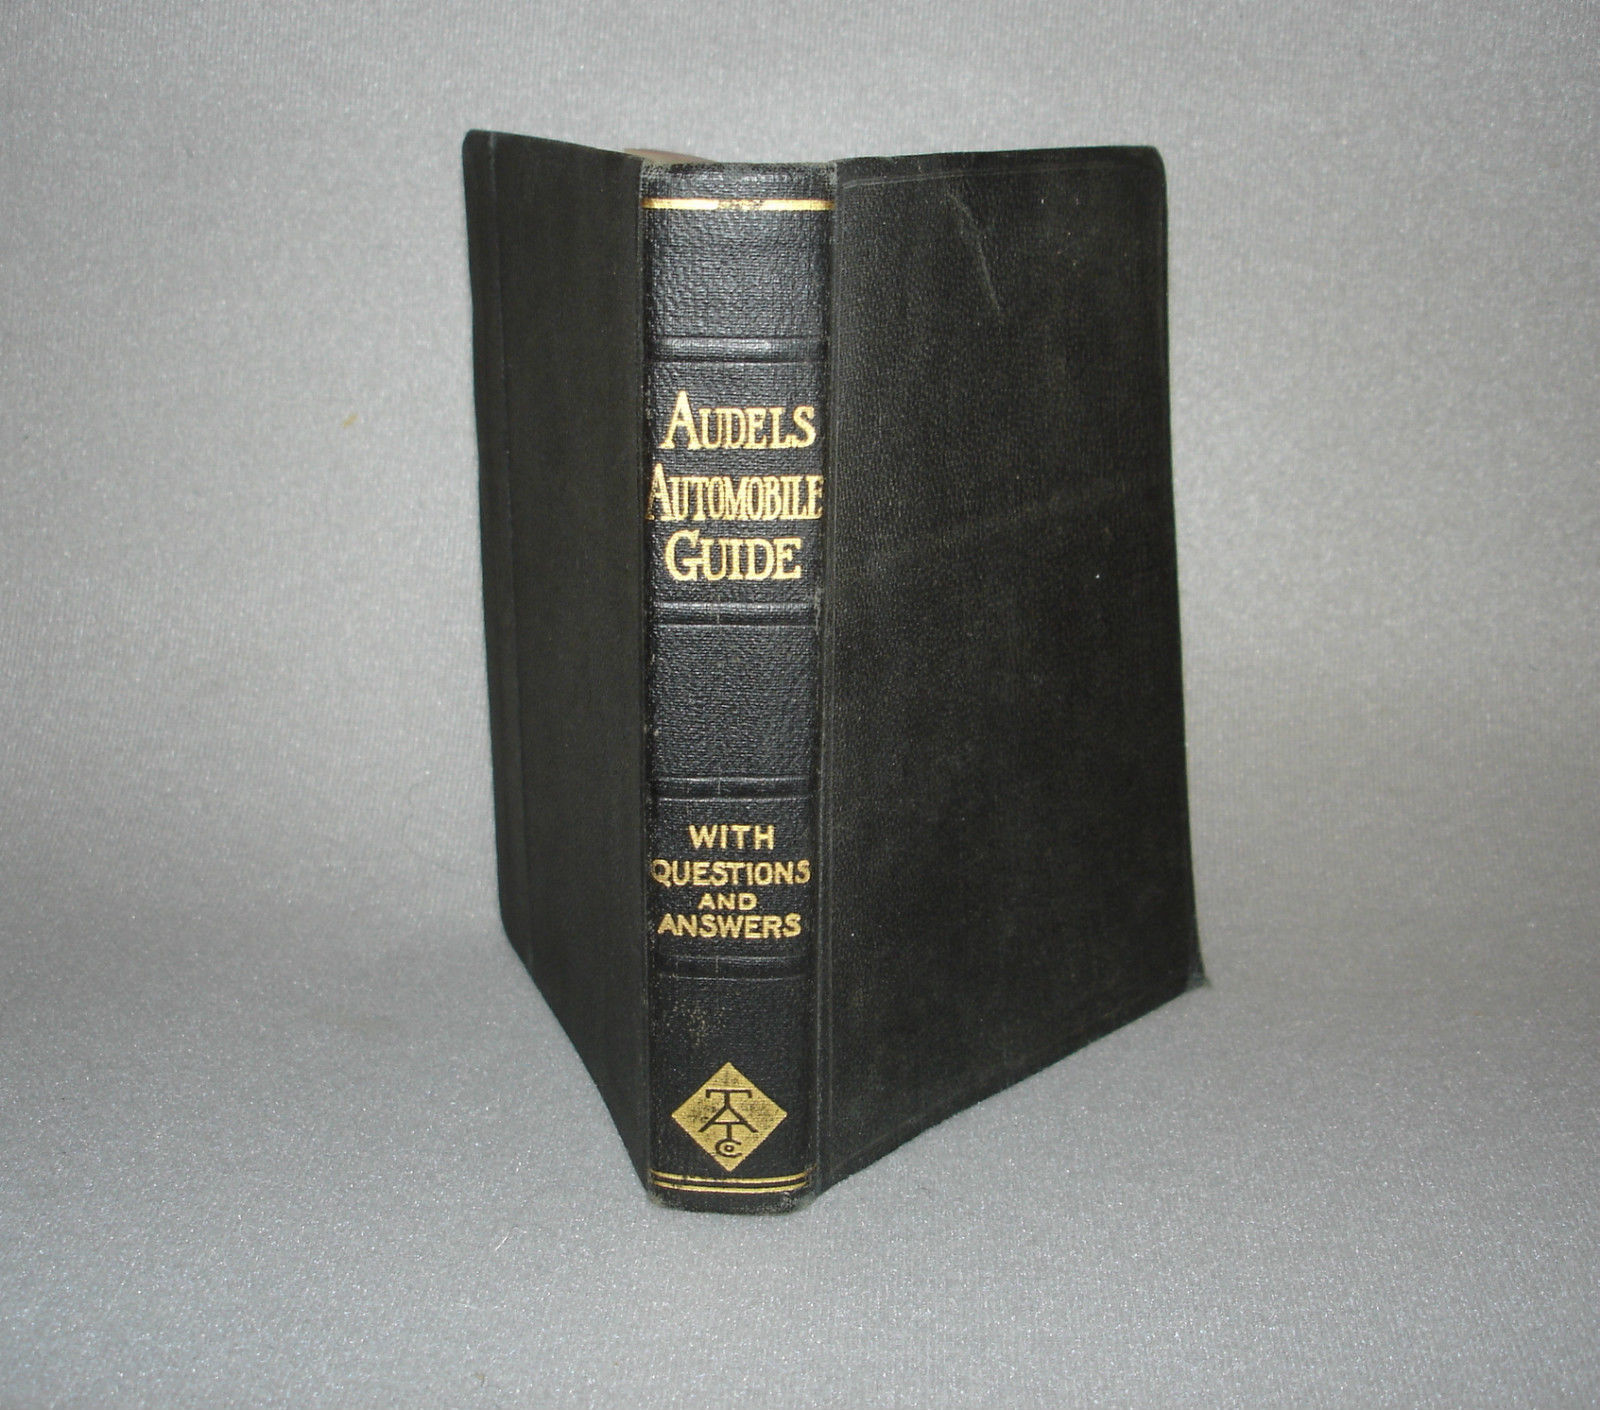 1915 AUDELS Automobile Guide With Questions and Answers